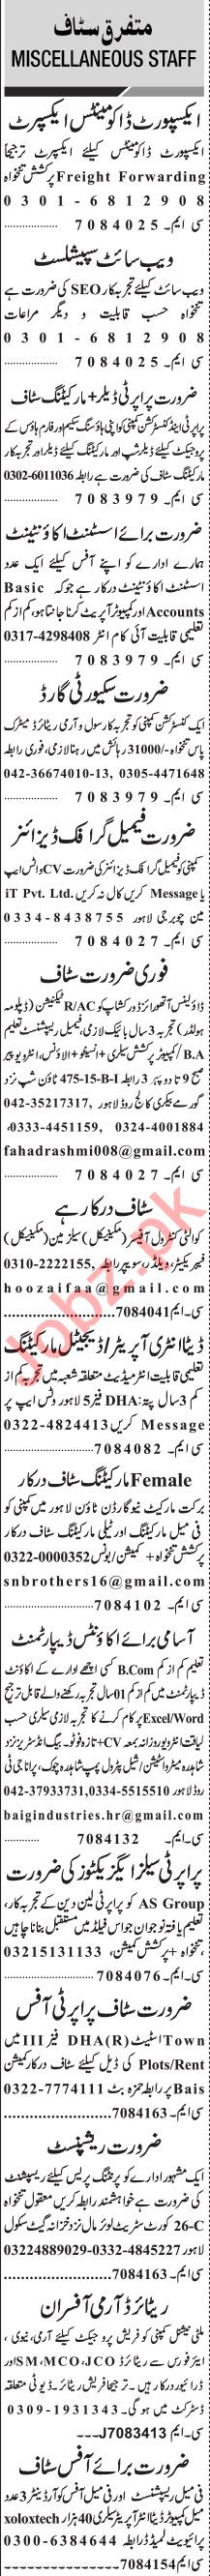 Jang Sunday Classified Ads 12th July 2020 for Admin Staff